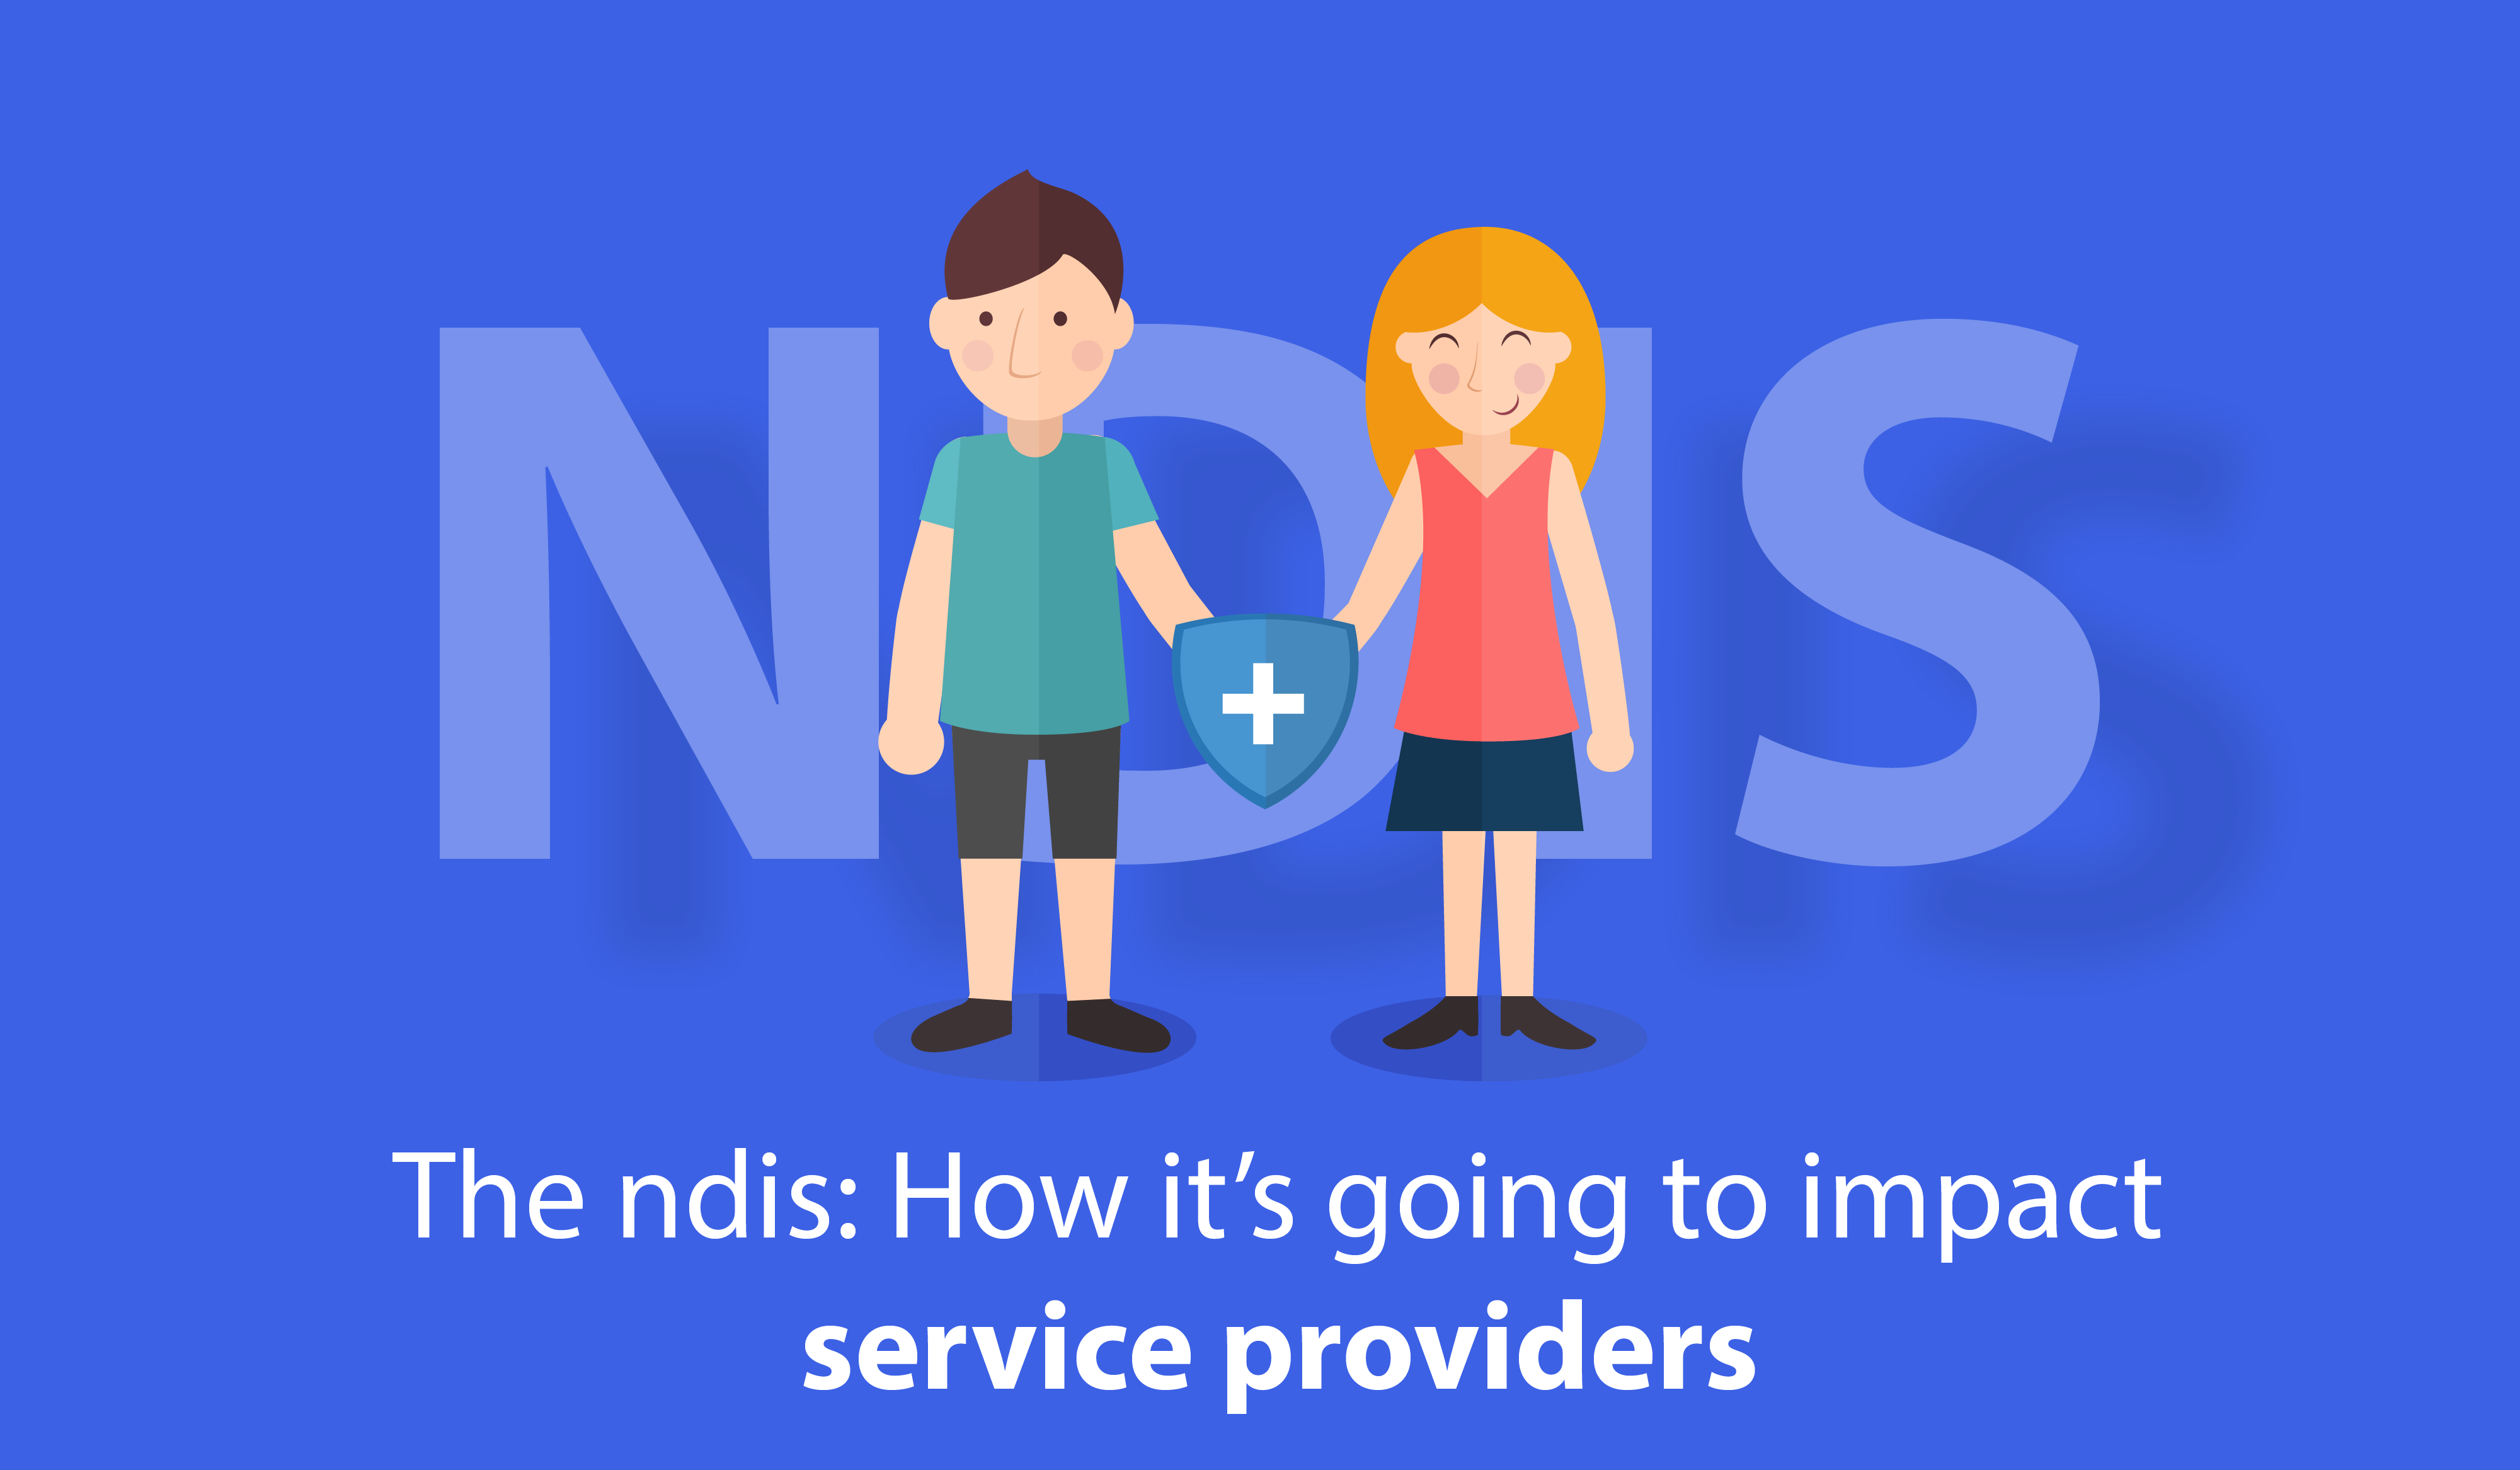 The NDIS: How it's going to impact service providers.